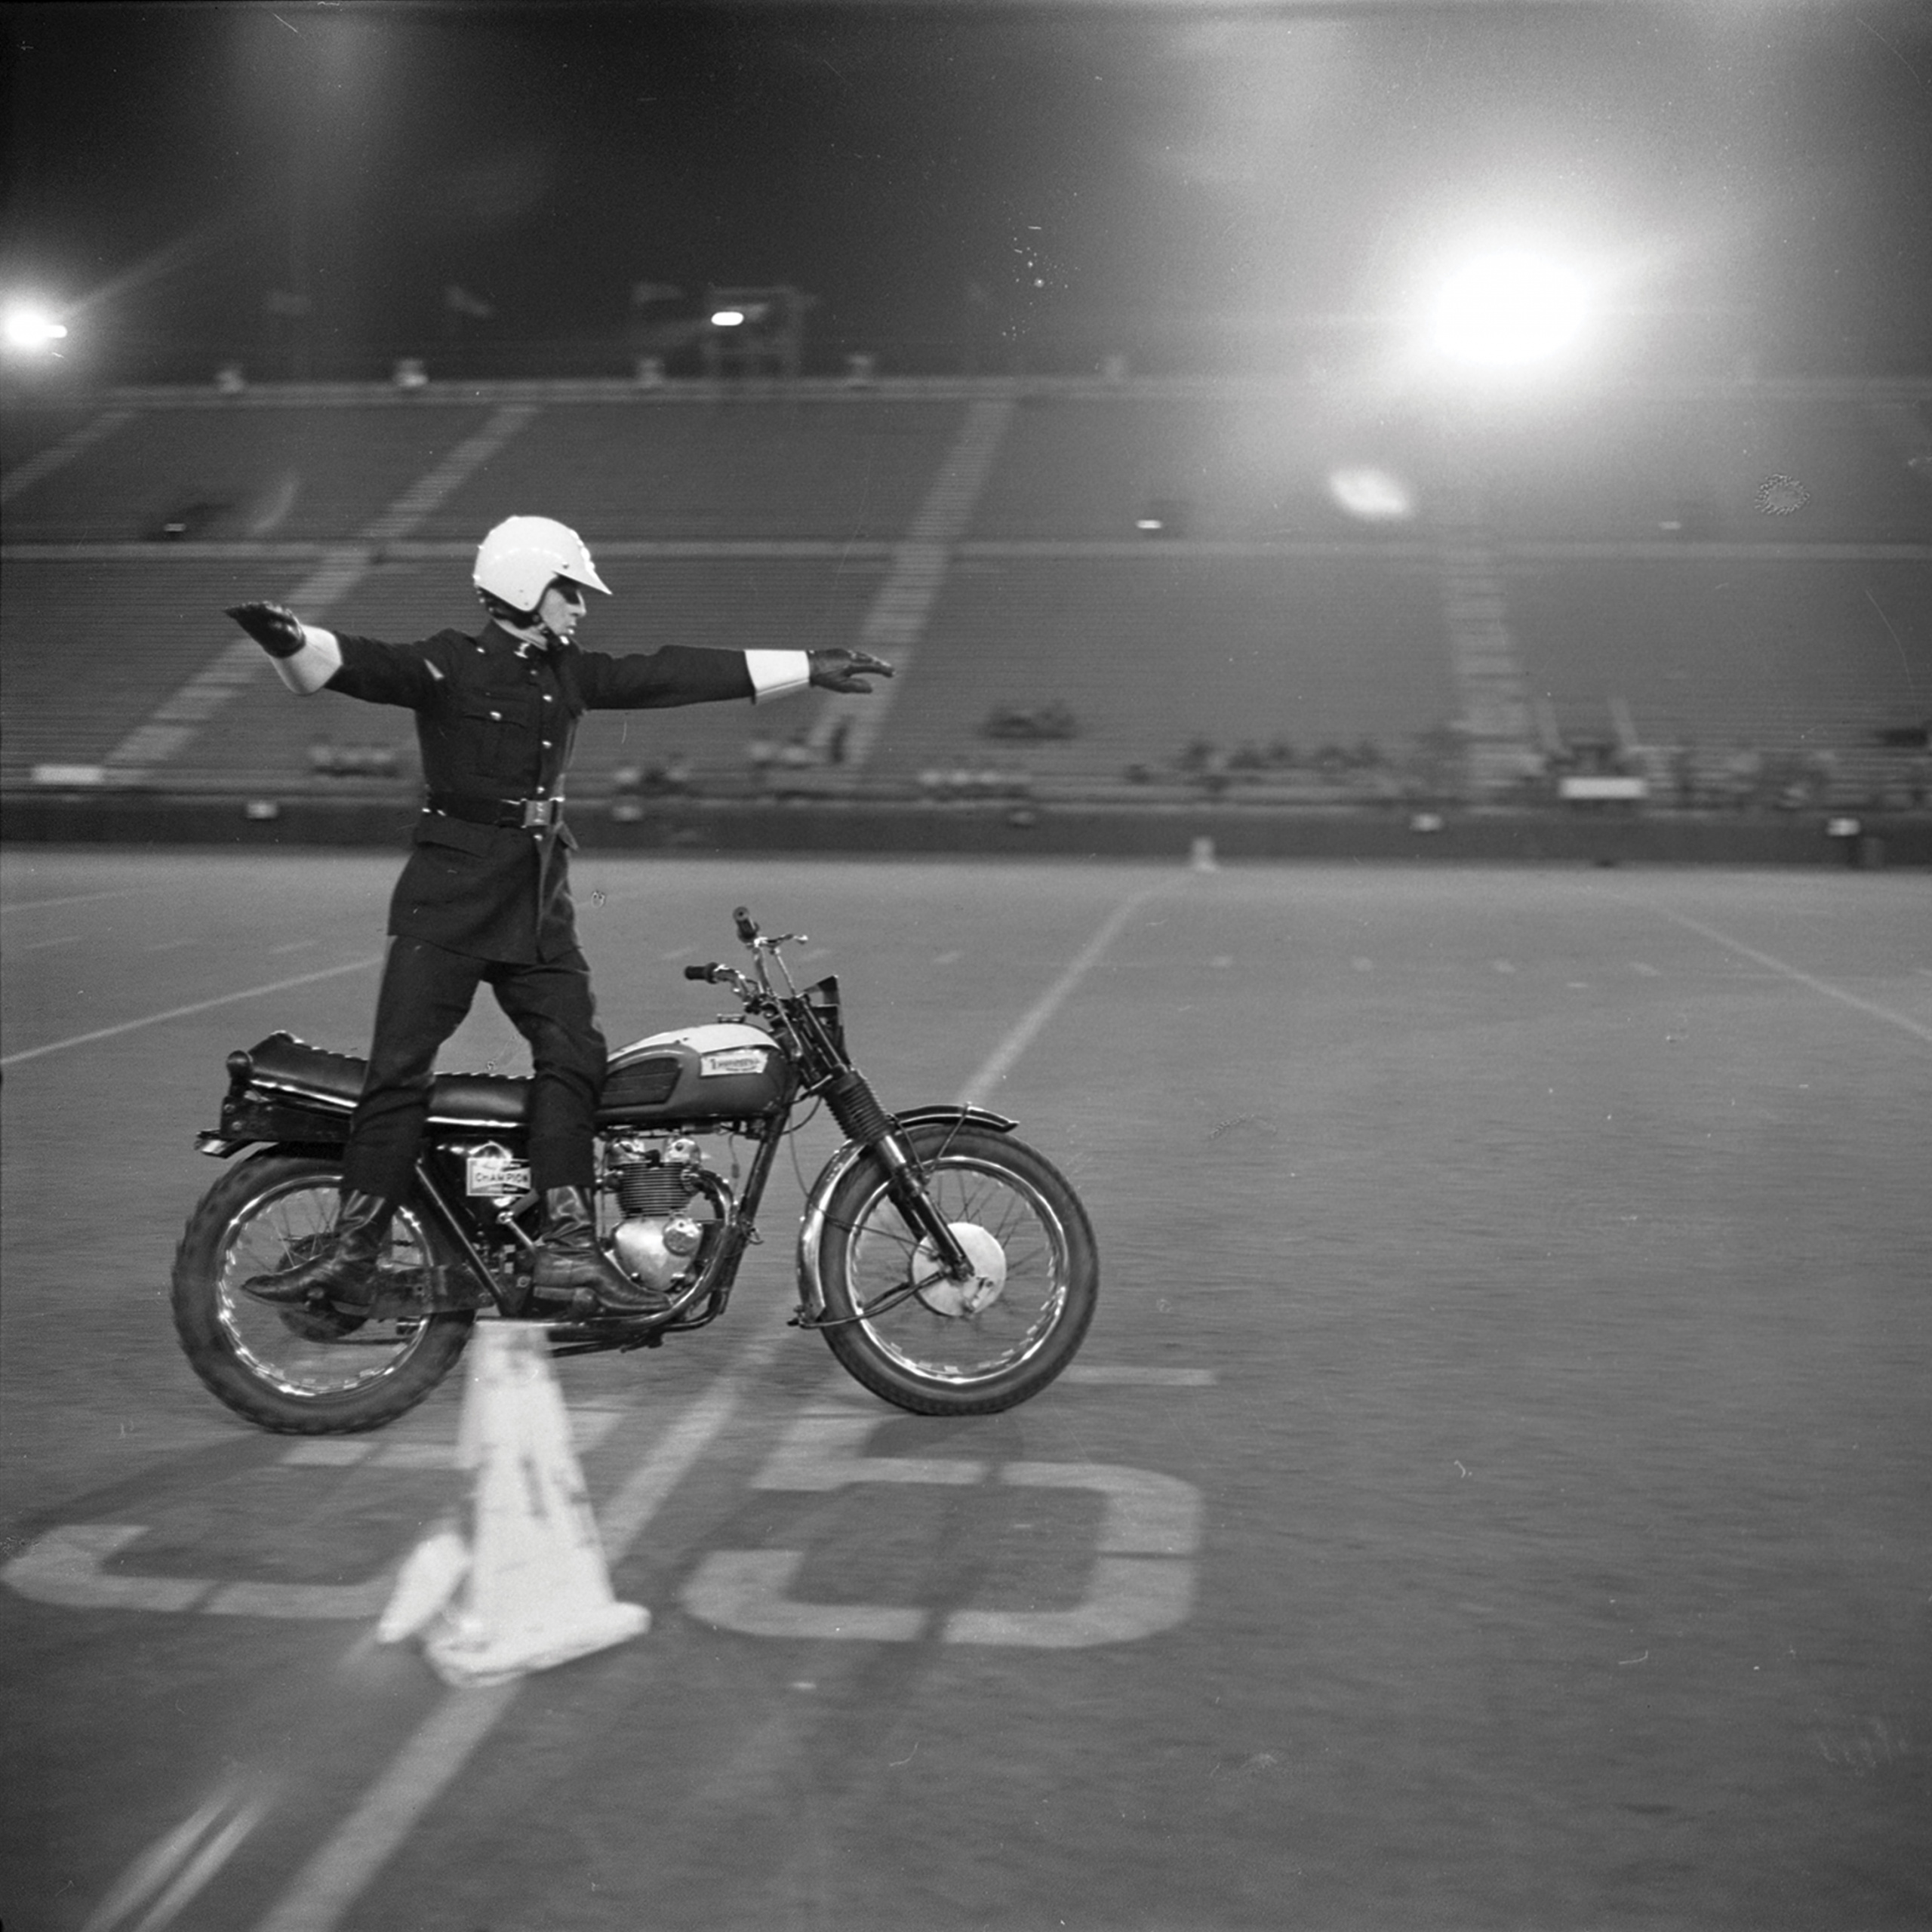 Motorcycle Rehearsal at CNE Grandstand, 1974. Canadian National Exhibition Archives, MG5-F3570-I1. Courtesy of the CNEA